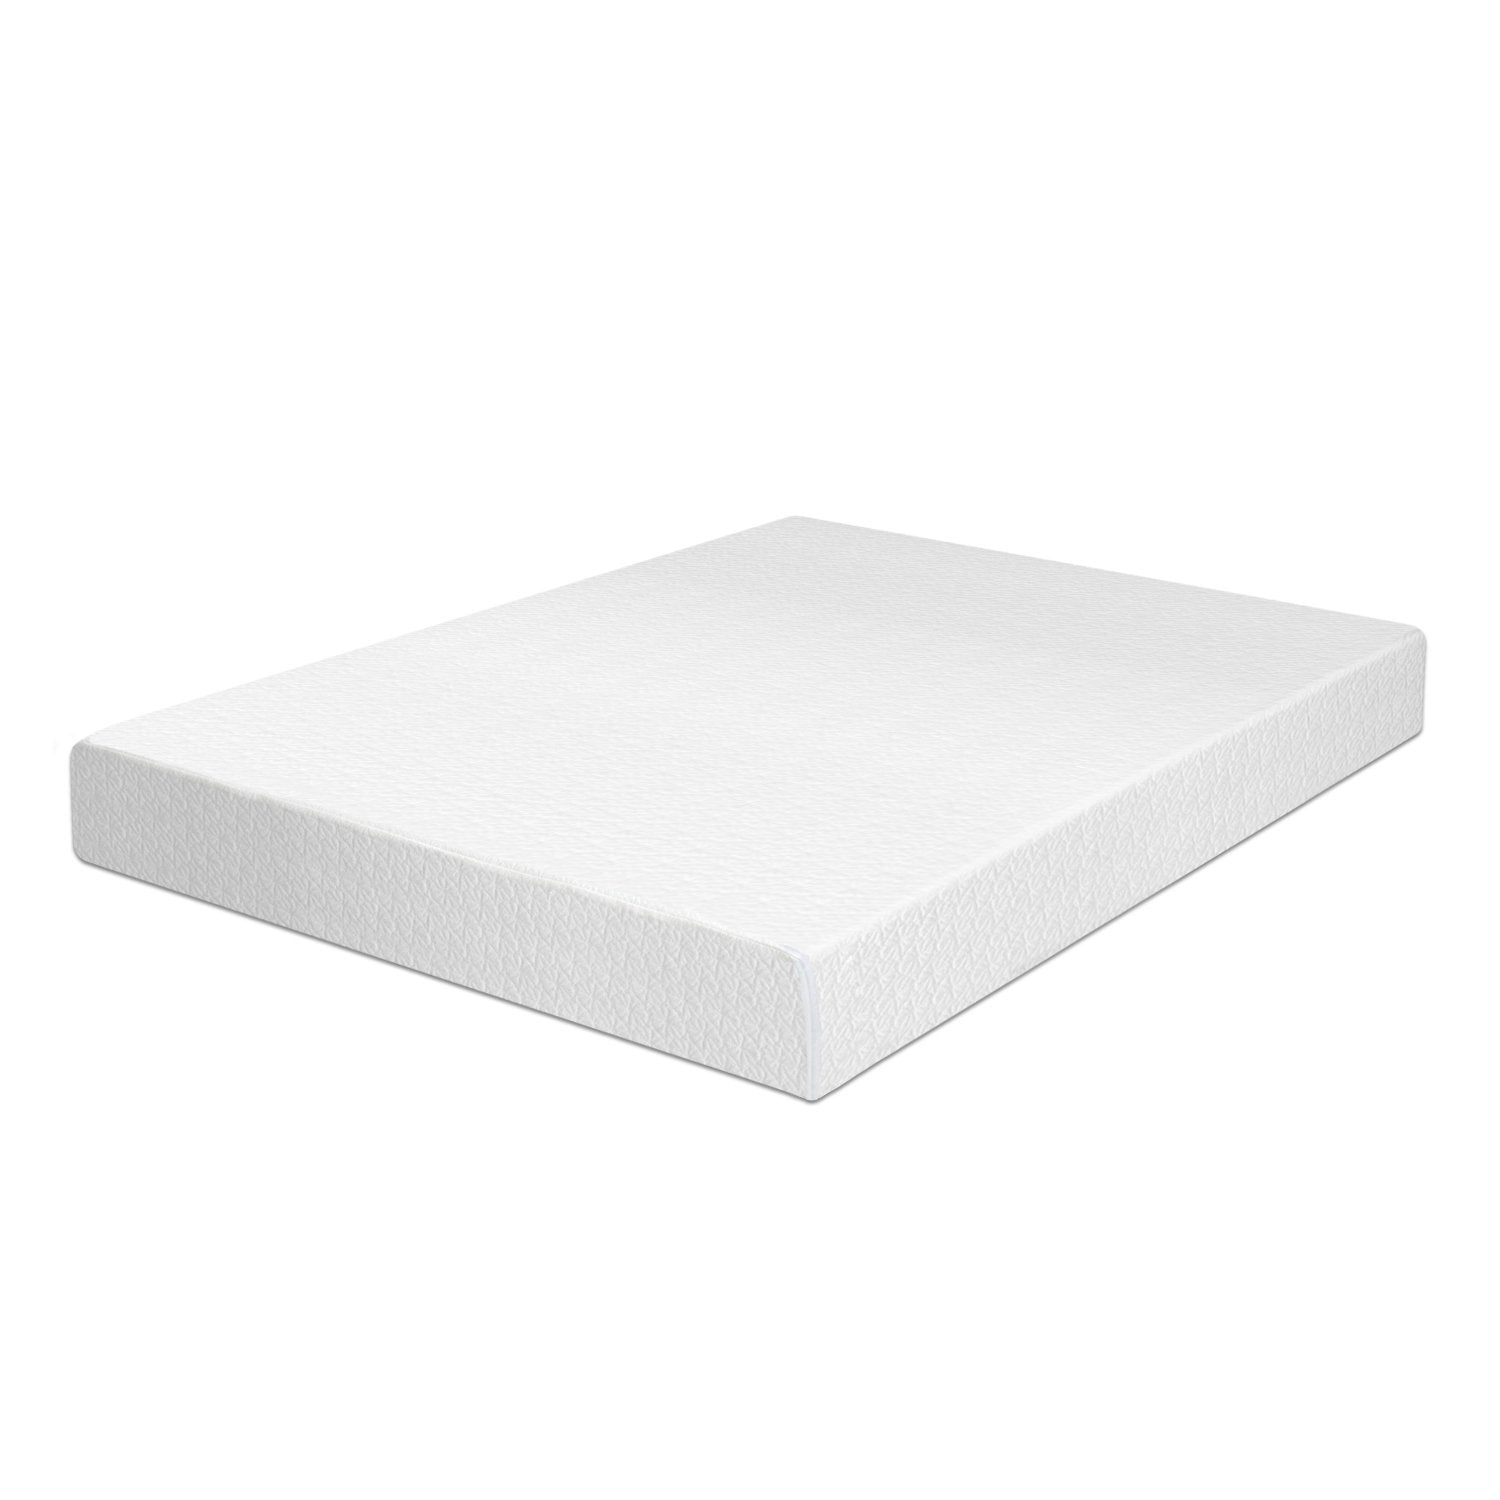 King size 8-inch Thick Memory Foam Mattress